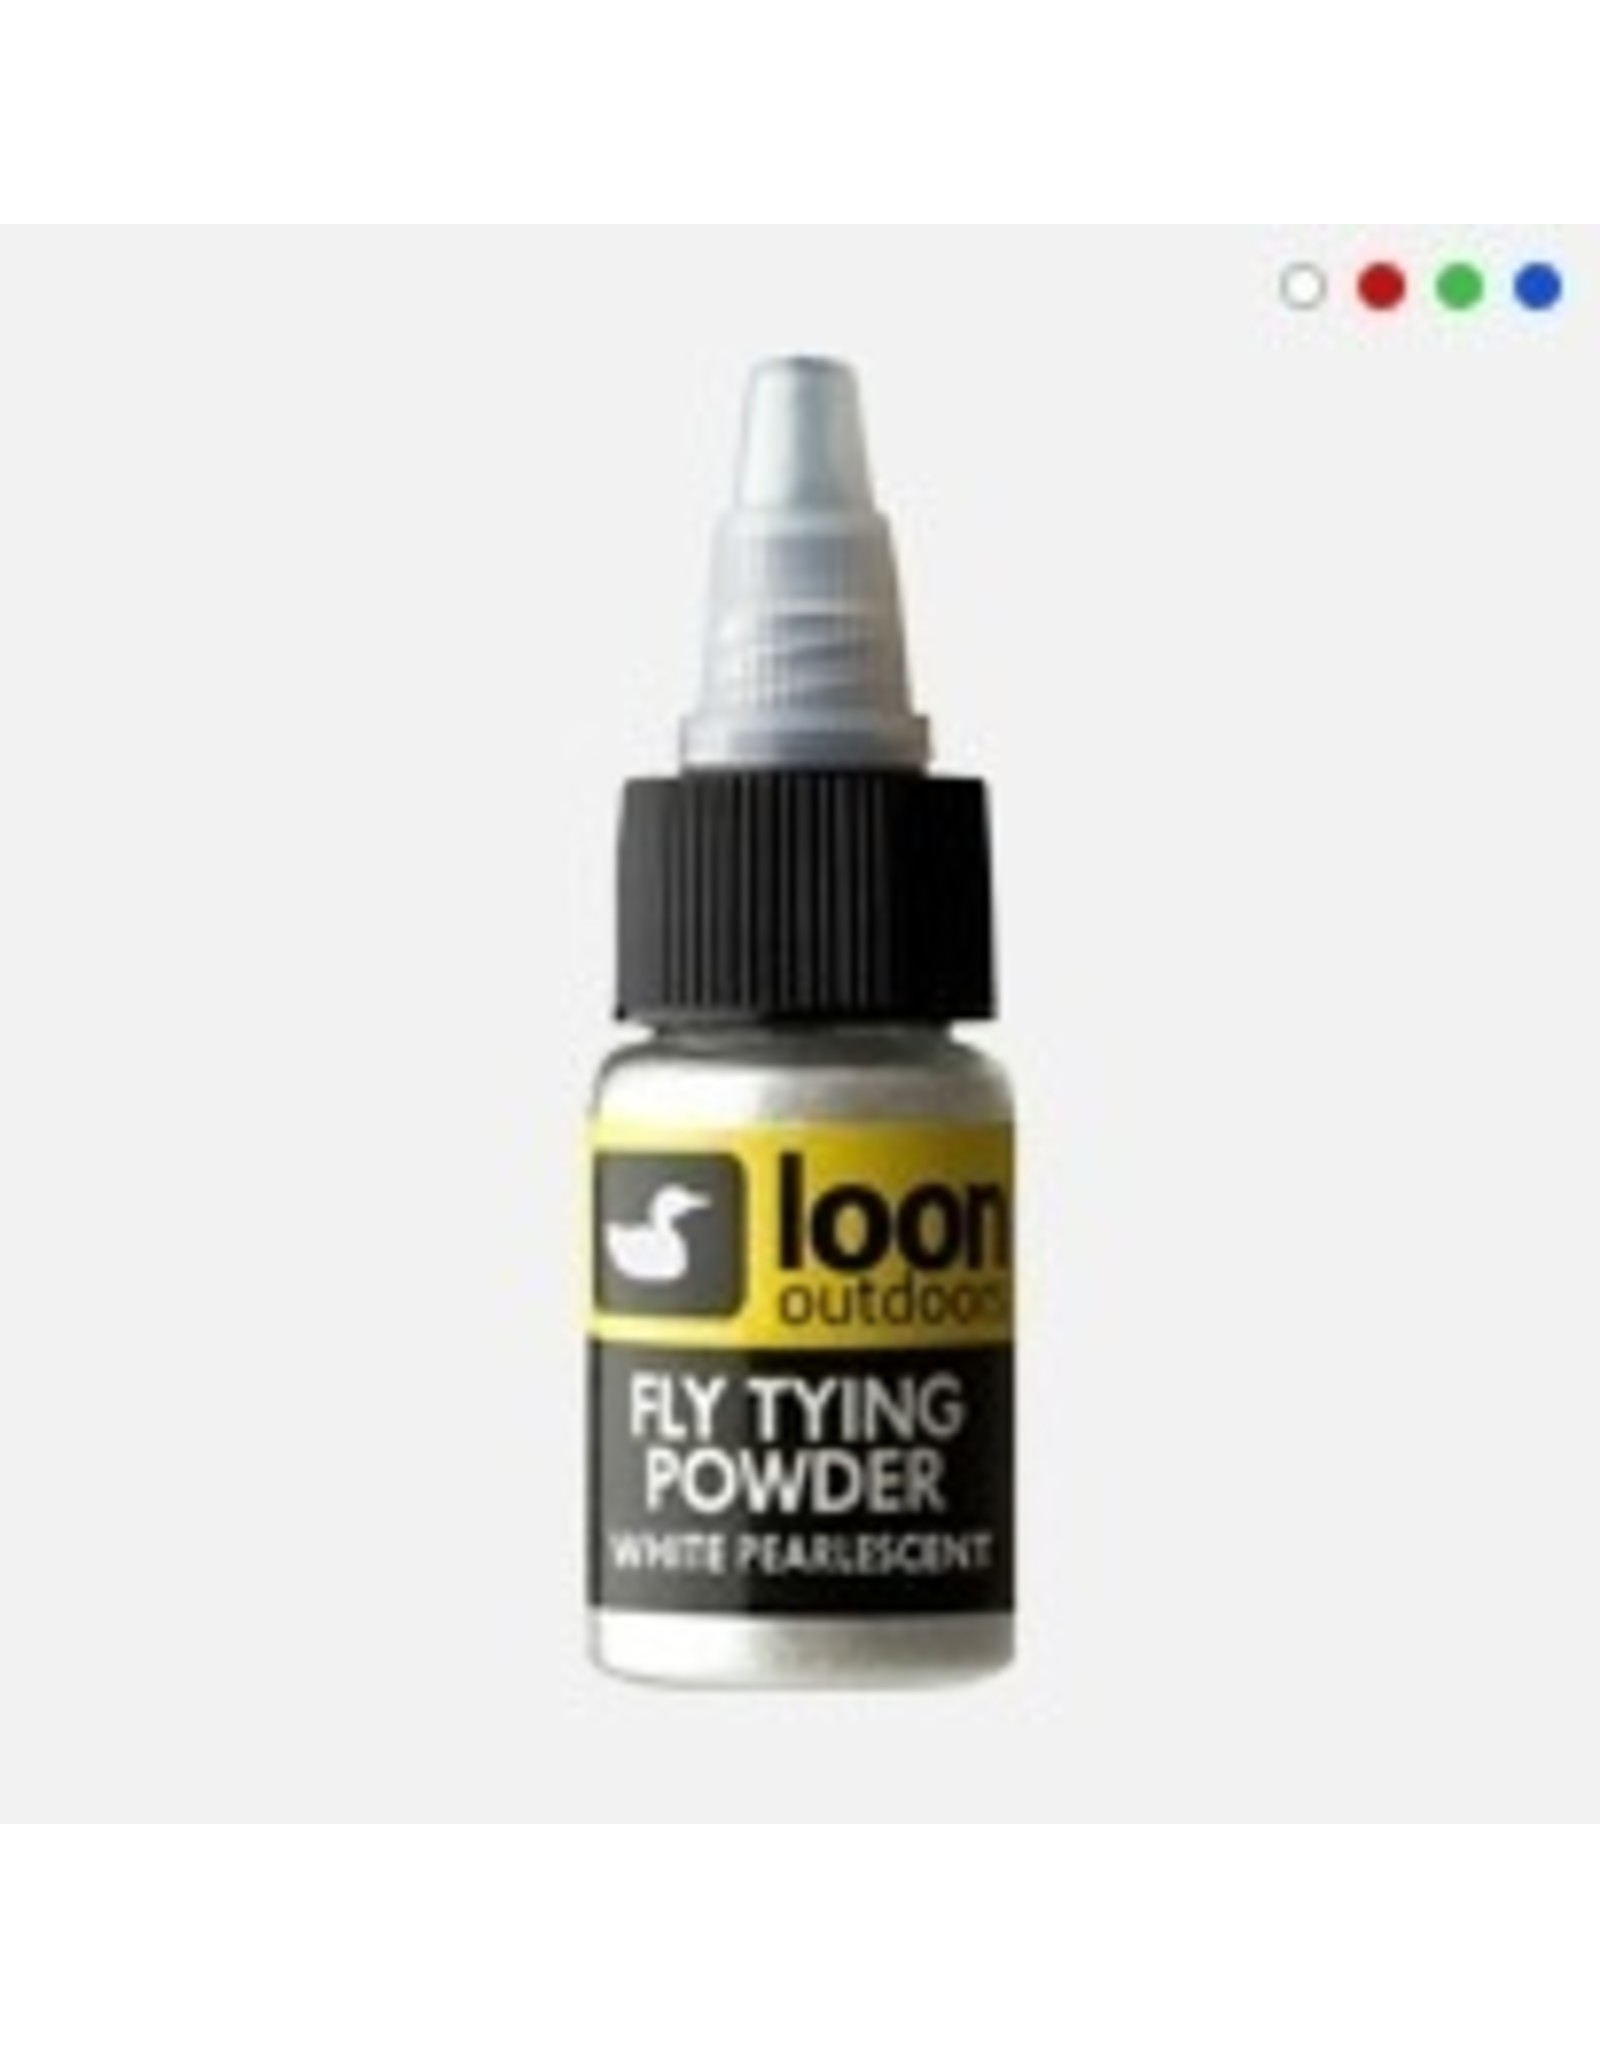 Loon Fly Tying Powder: Pearl White